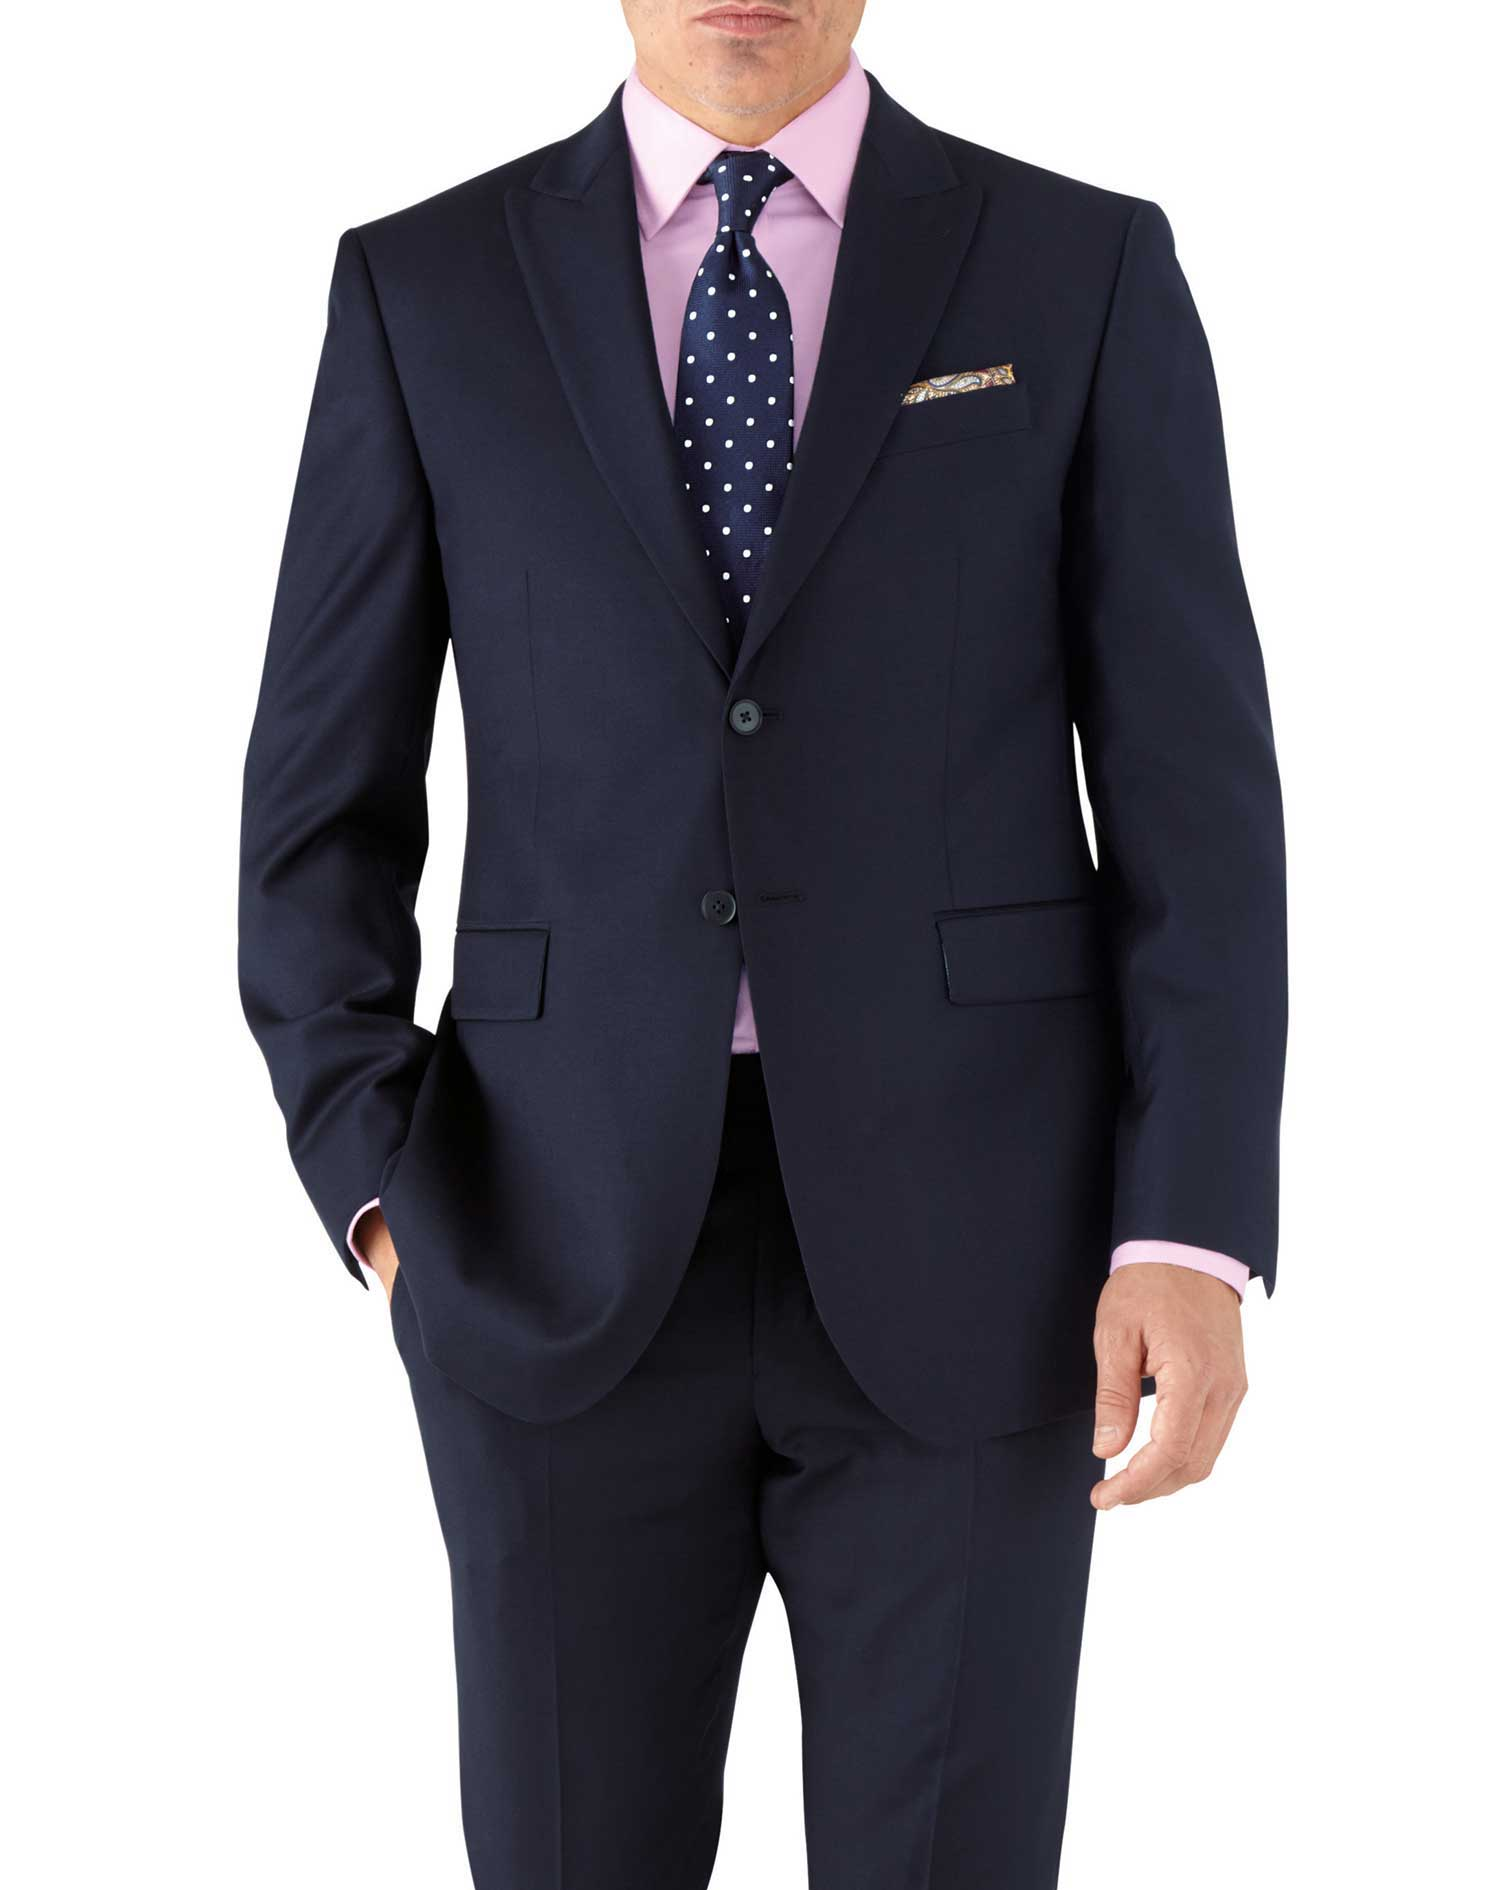 Navy Classic Fit Peak Lapel Twill Business Suit Wool Jacket Size 40 Short by Charles Tyrwhitt